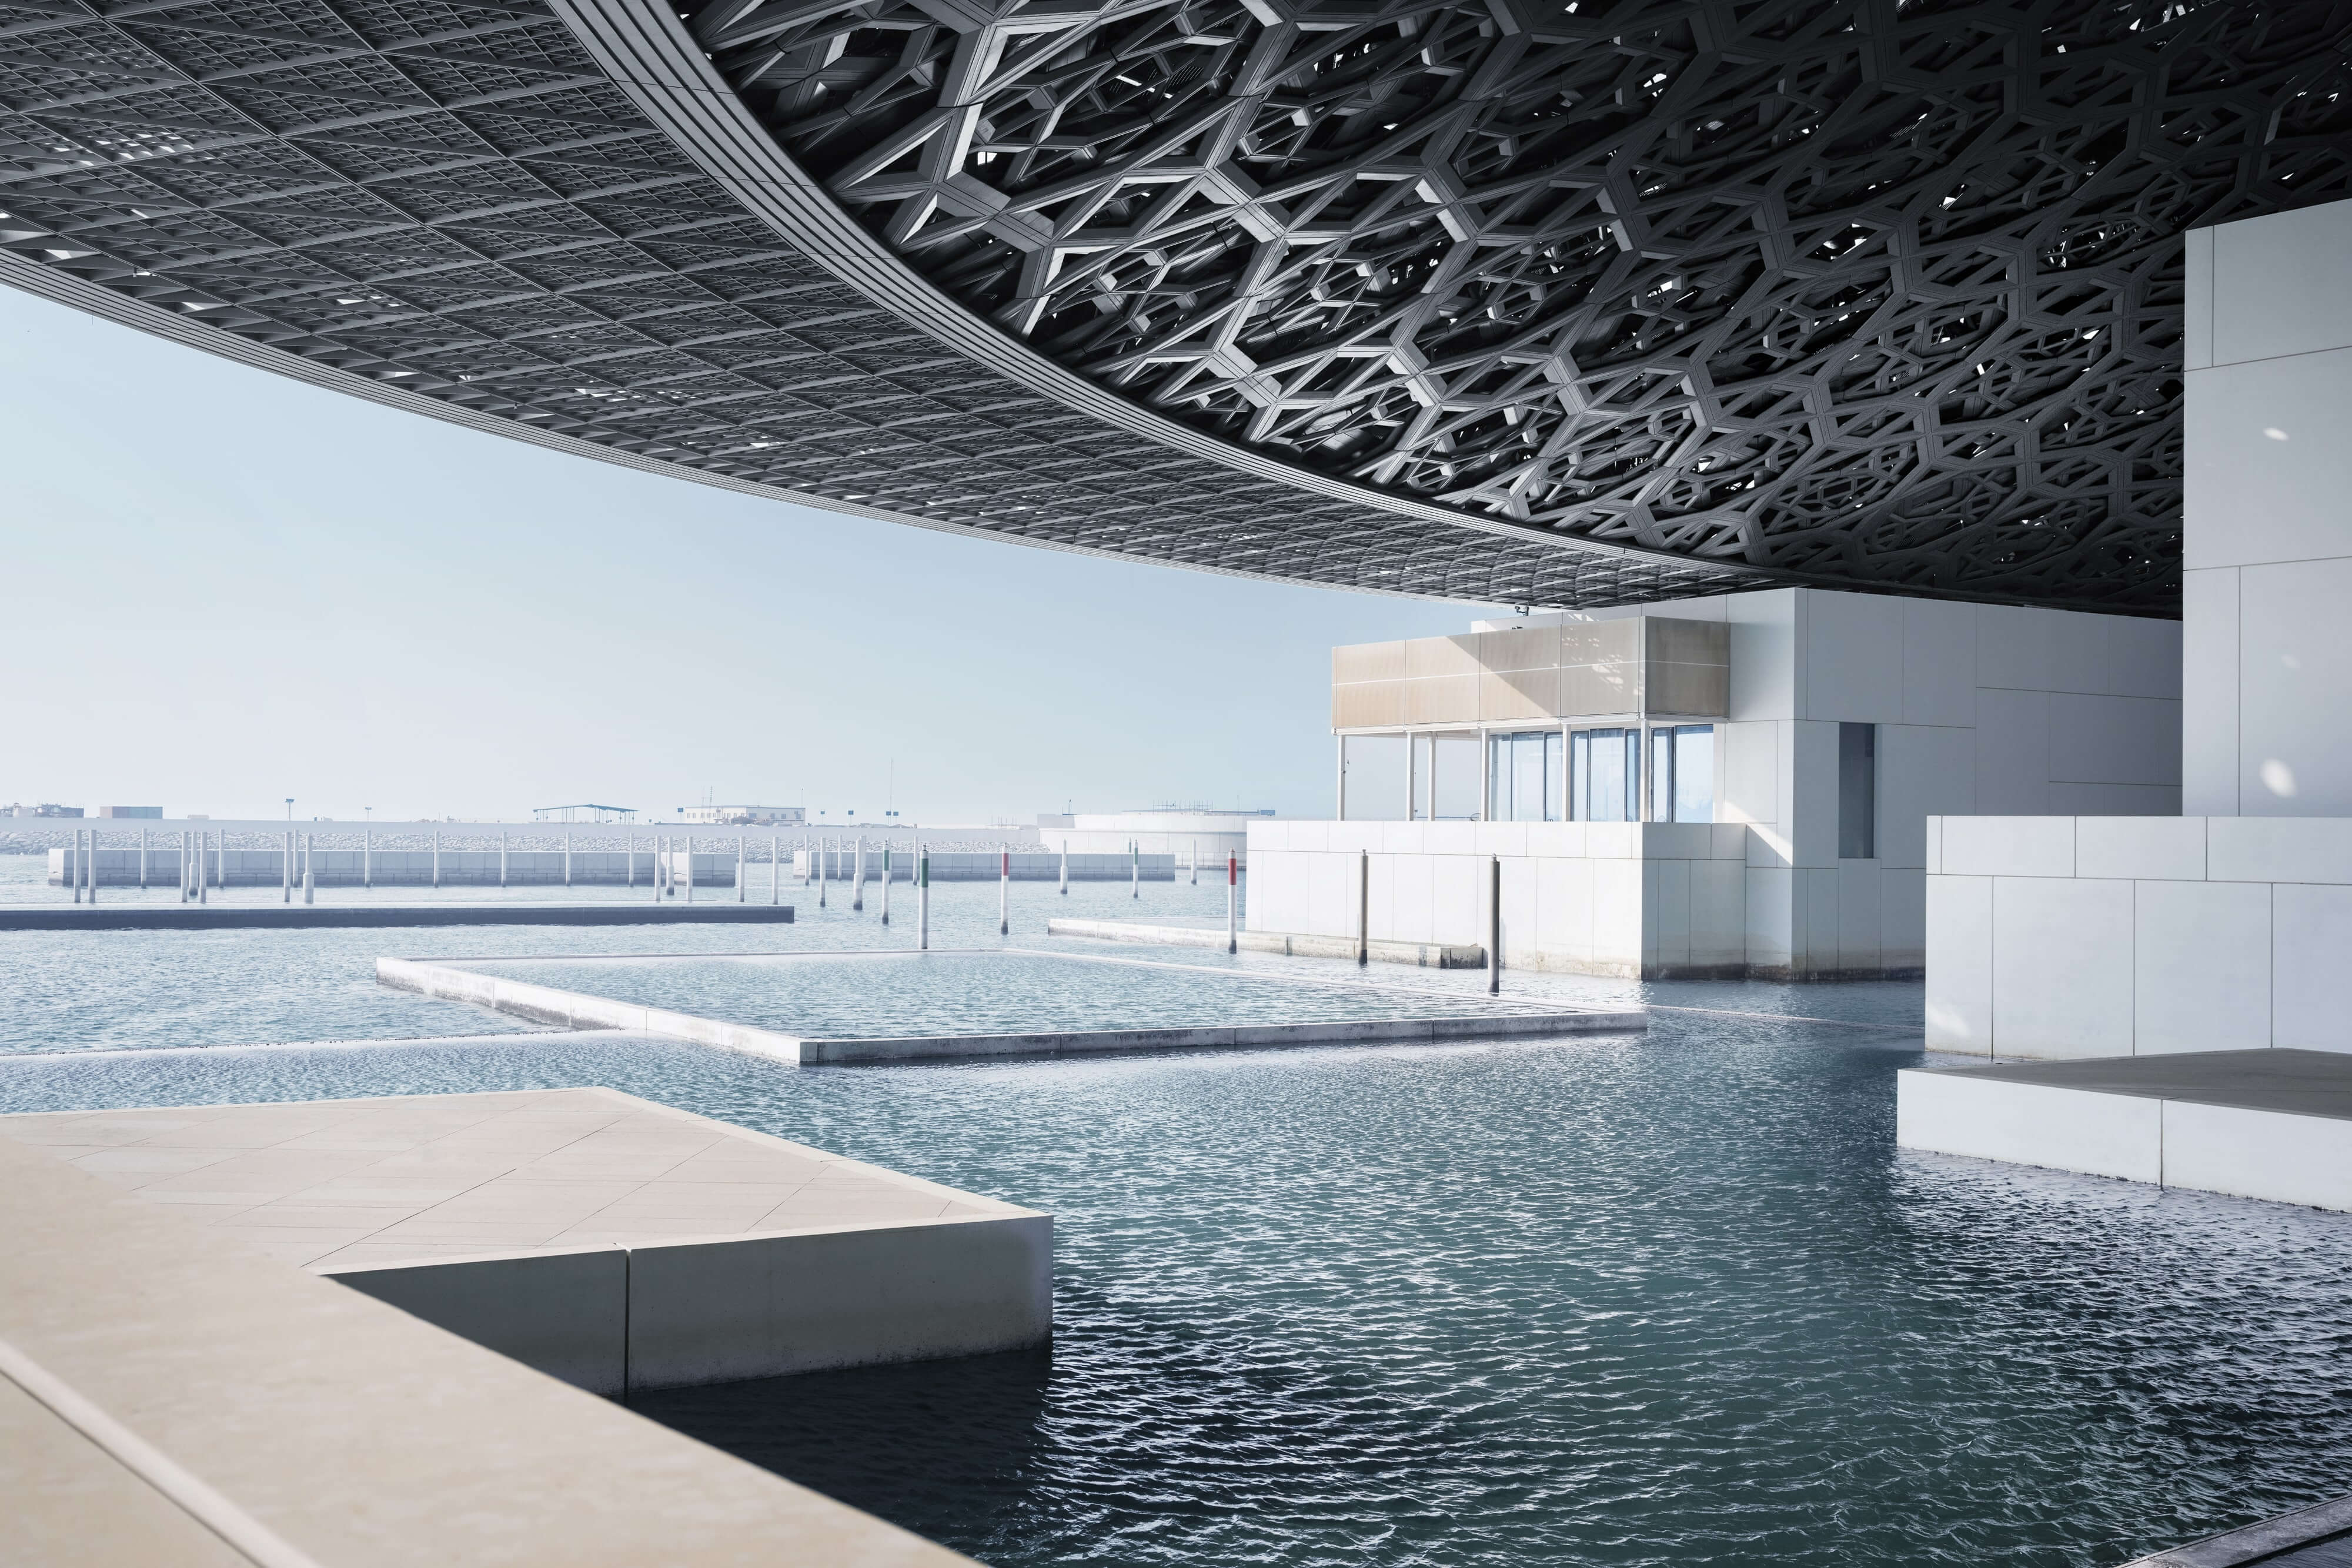 Spaces & view - Photography by Mohamed Somji © Louvre Abu Dhabi